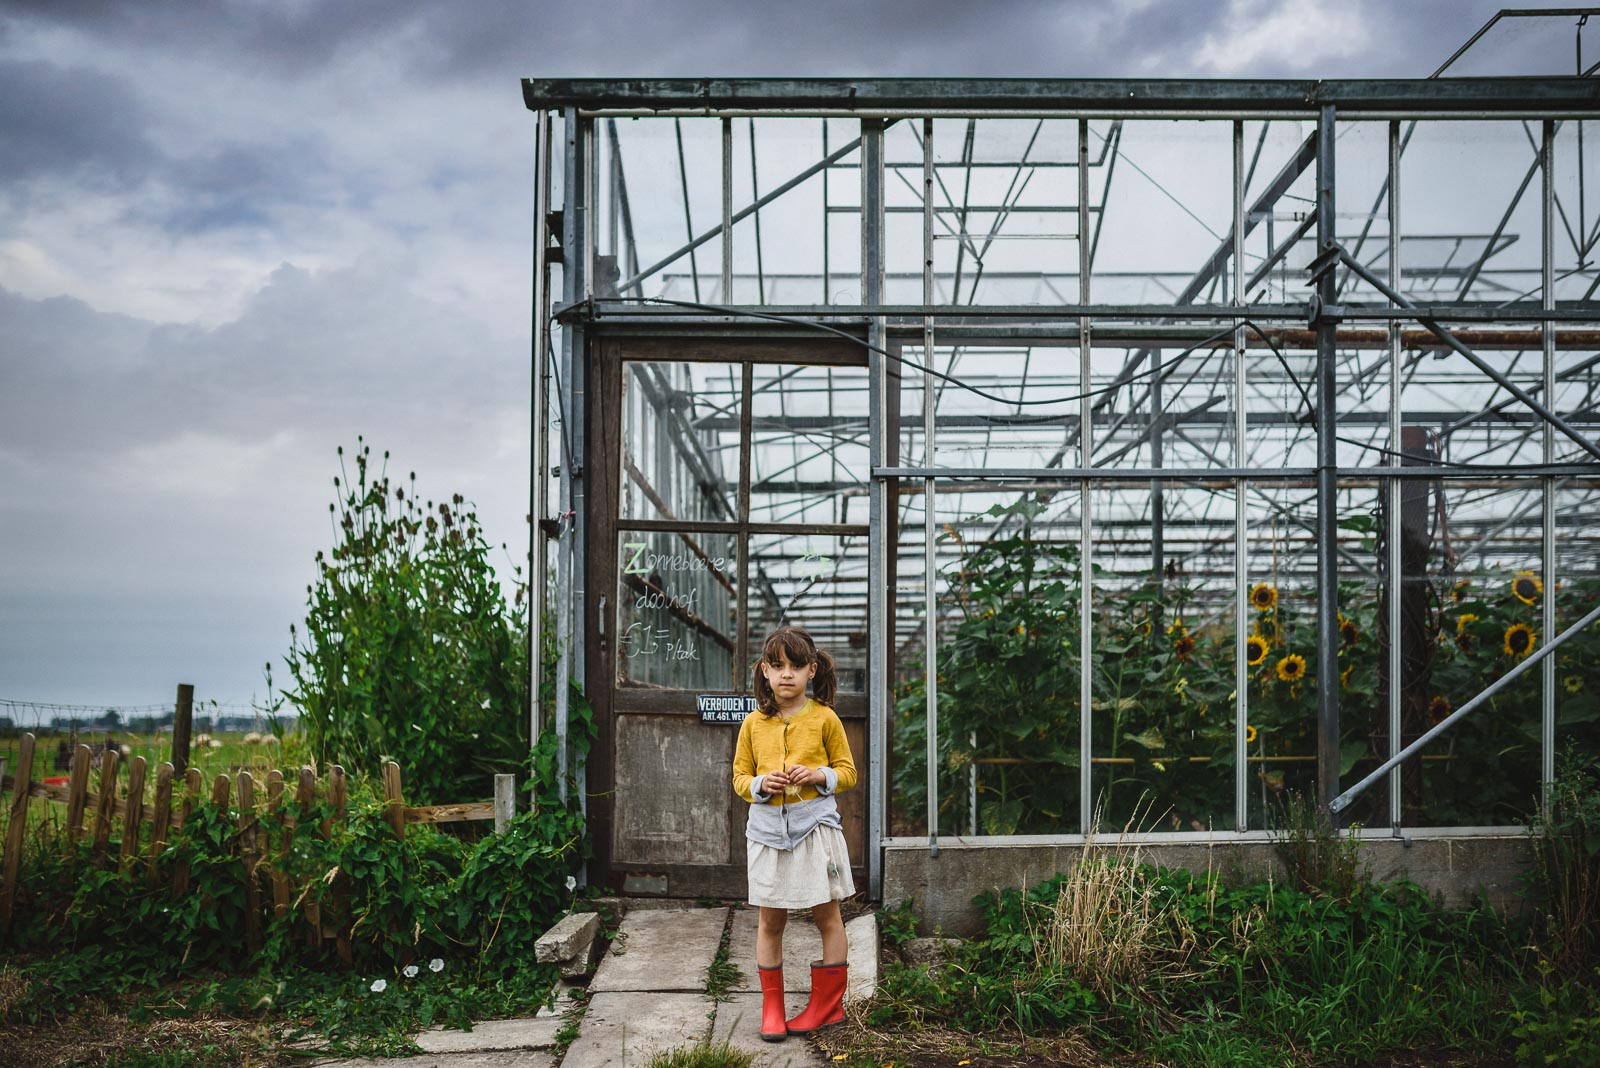 picture of girl by a greenhouse with sunflowers in it by Anita Perminova